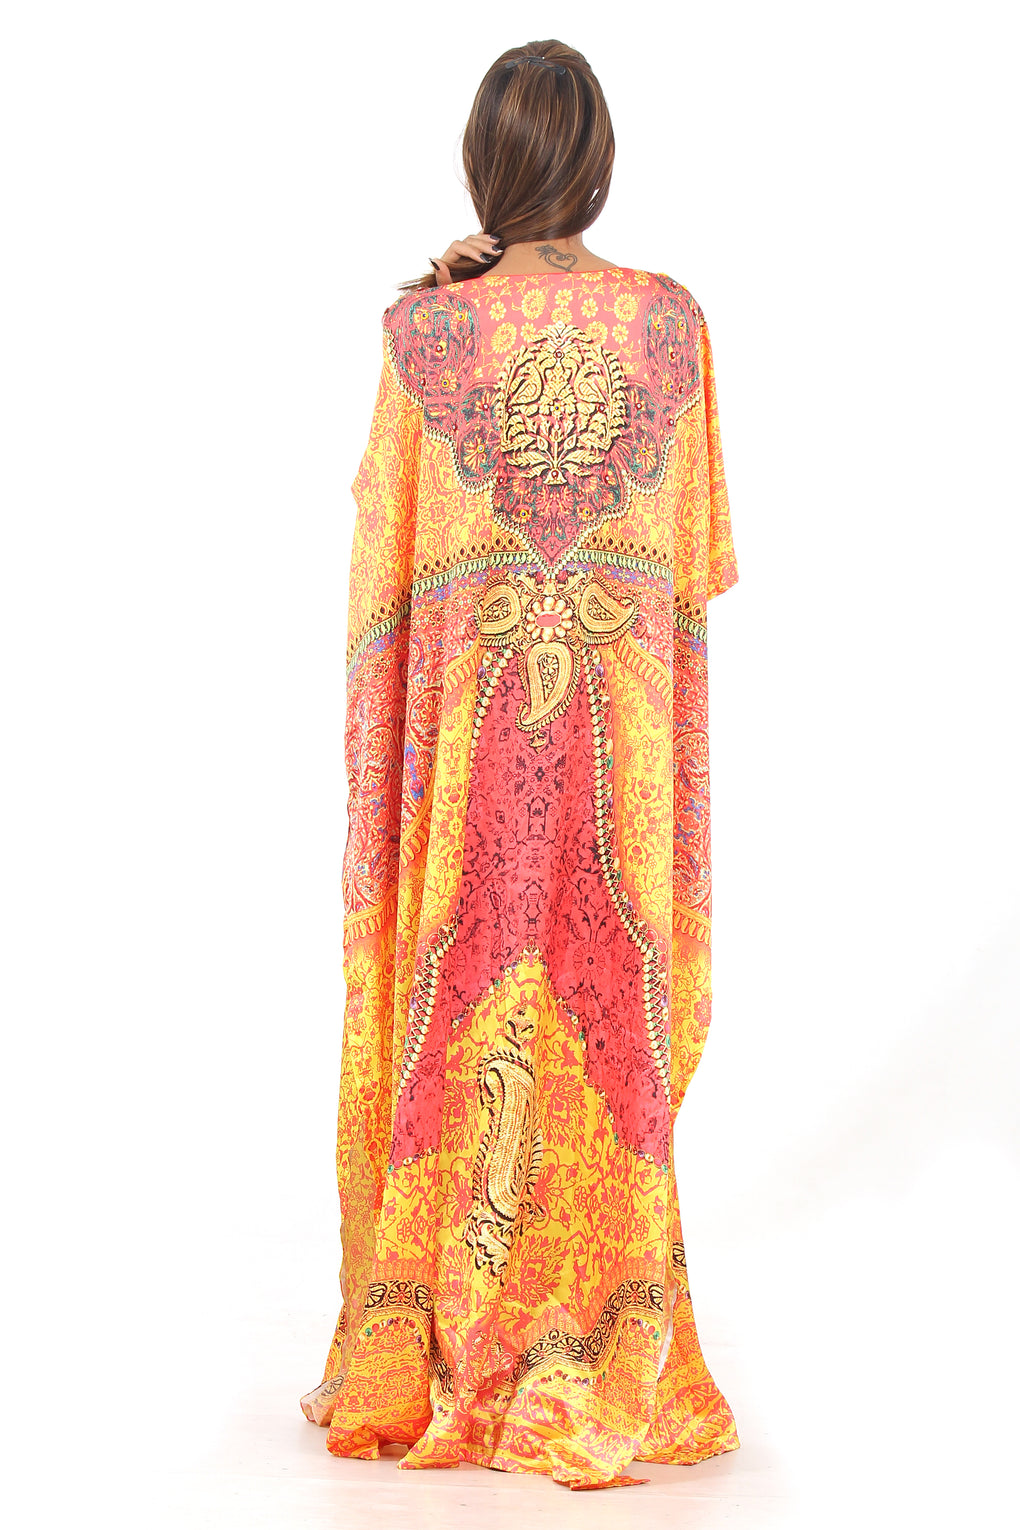 Silk looks and feel kaftan one piece dress on sale/jeweled/handmade/caftan beach cover up hot look luxuries Resort party kaftan 95 - Silk kaftan